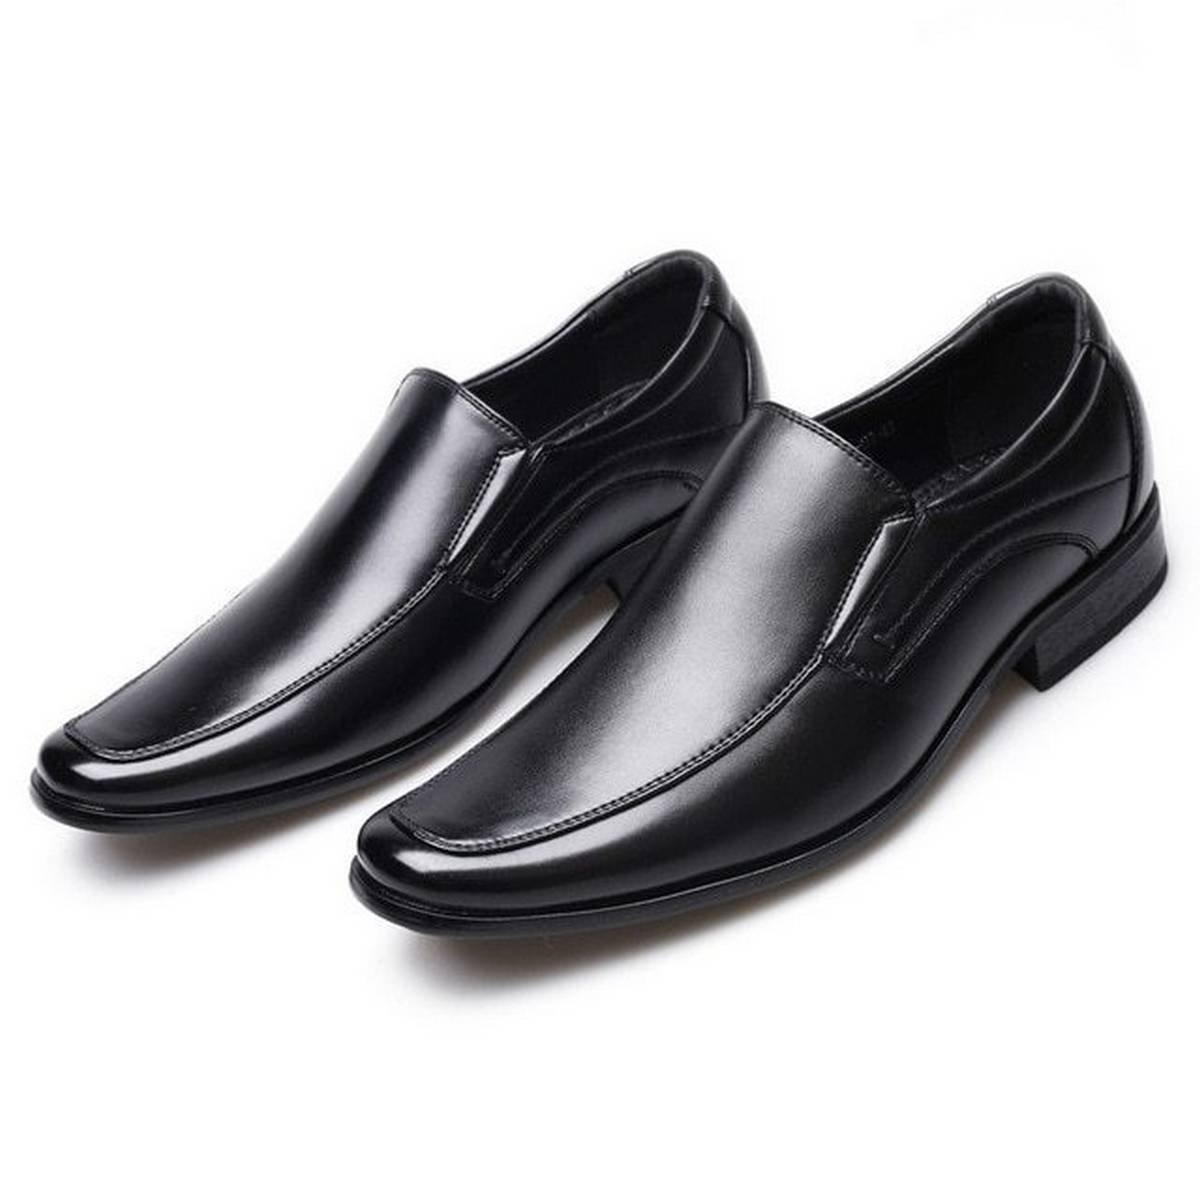 sale 50 % off formal offices shoes only 799